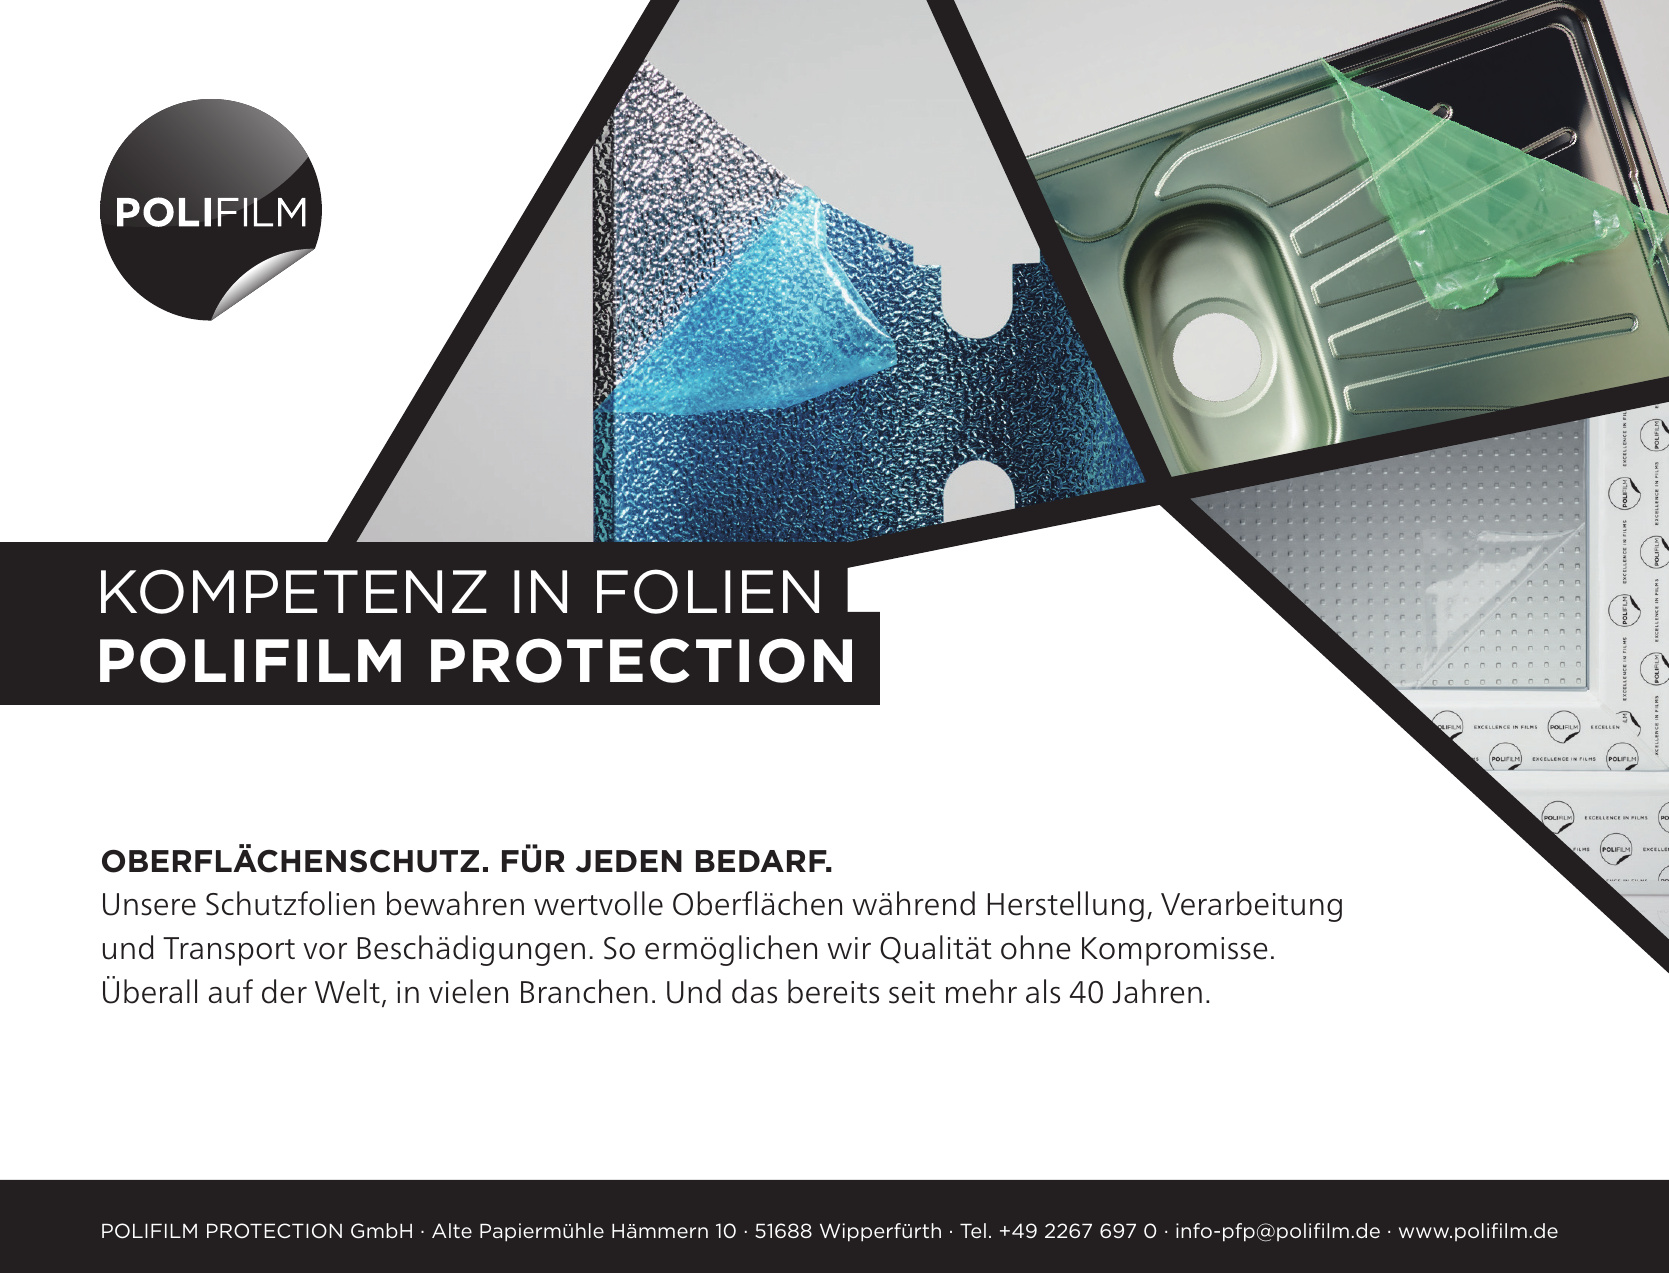 Polifilm Protection GmbH